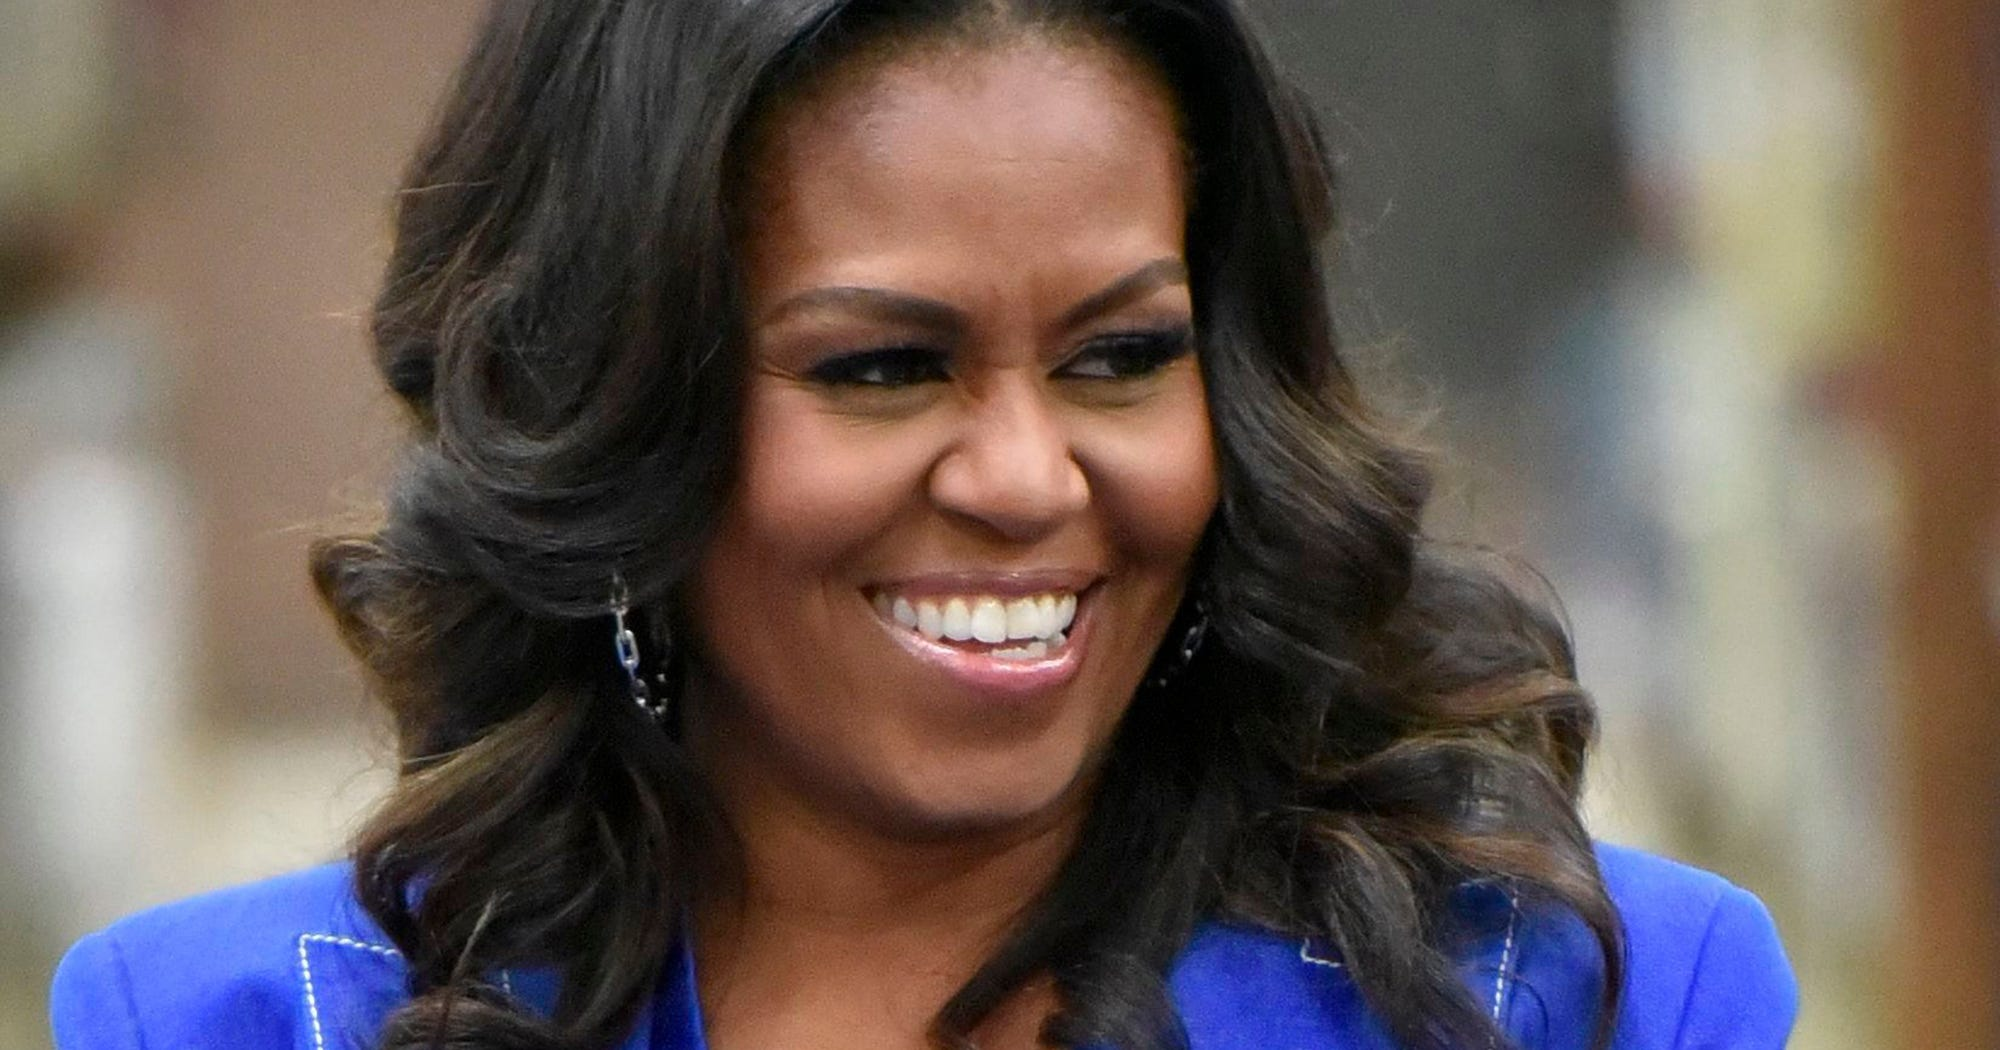 Michelle Obama Shows Off Her Natural Curls On The Cover Of Essence